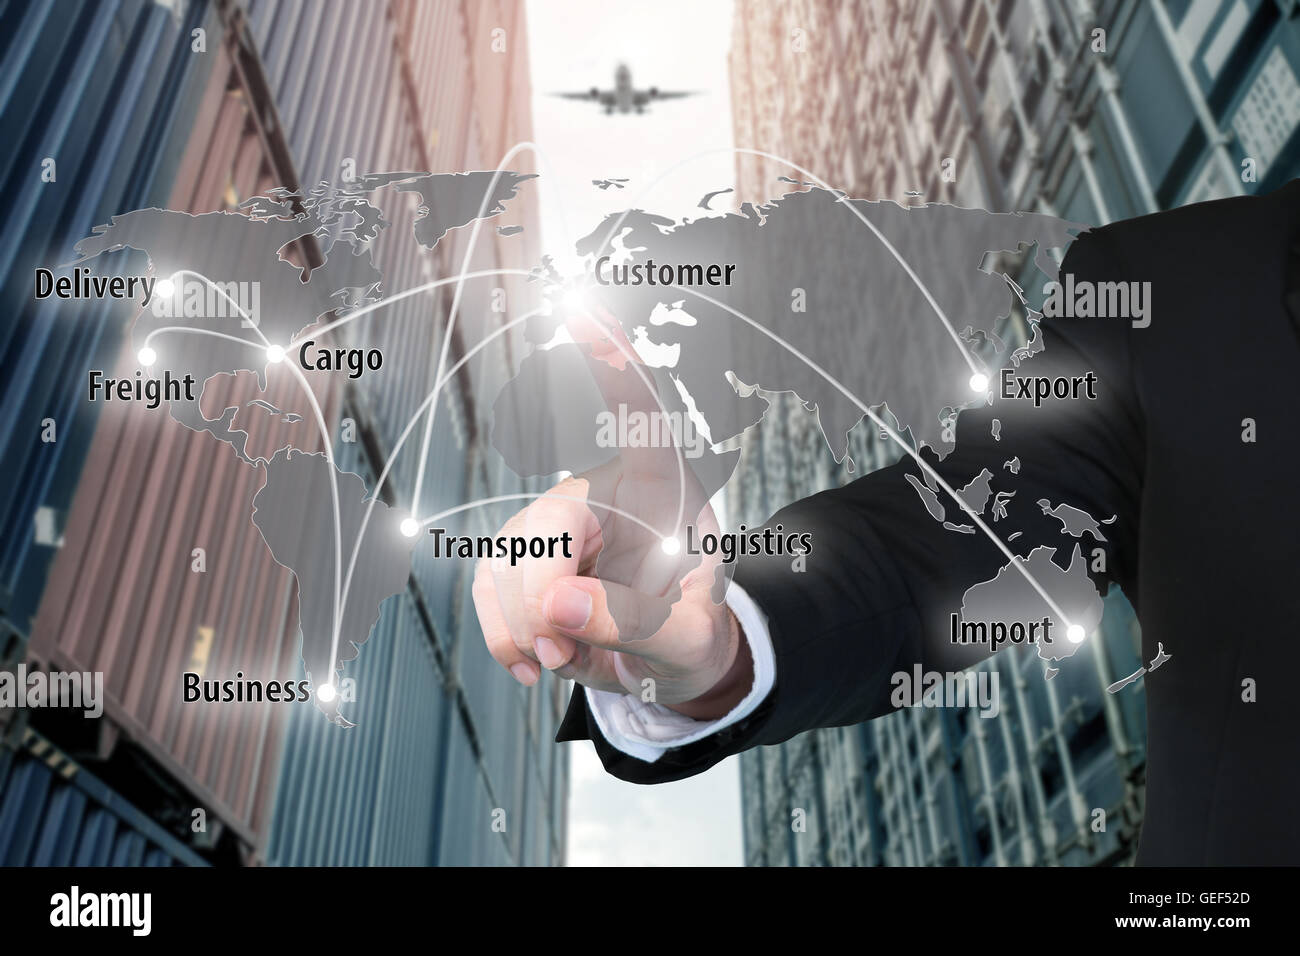 Businessman working with virtual interface connection map of global network partner connection - Stock Image